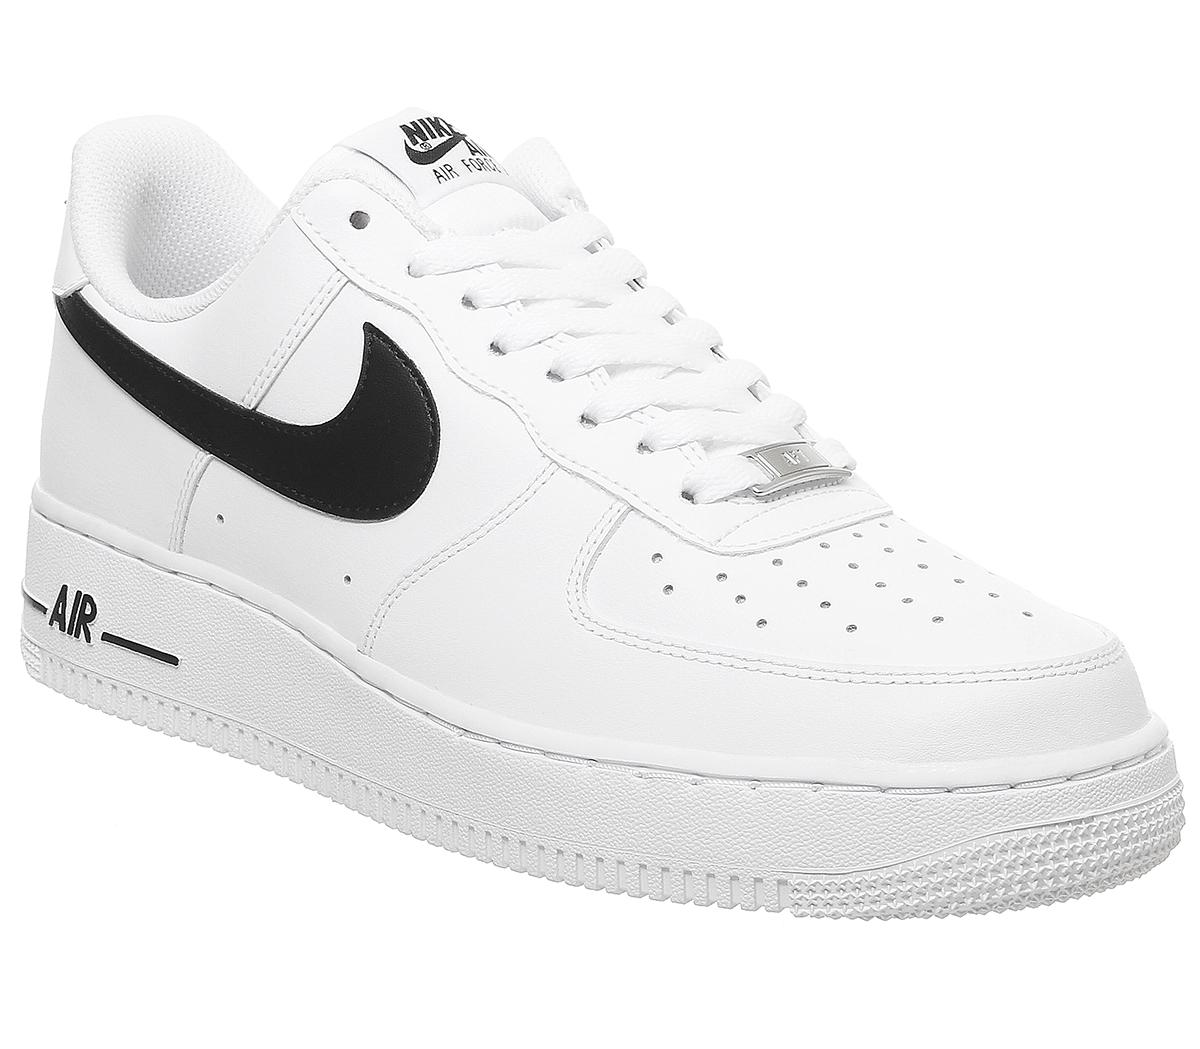 asistente Mal funcionamiento postura  Nike Nike Air Force One Trainers White Black - His trainers